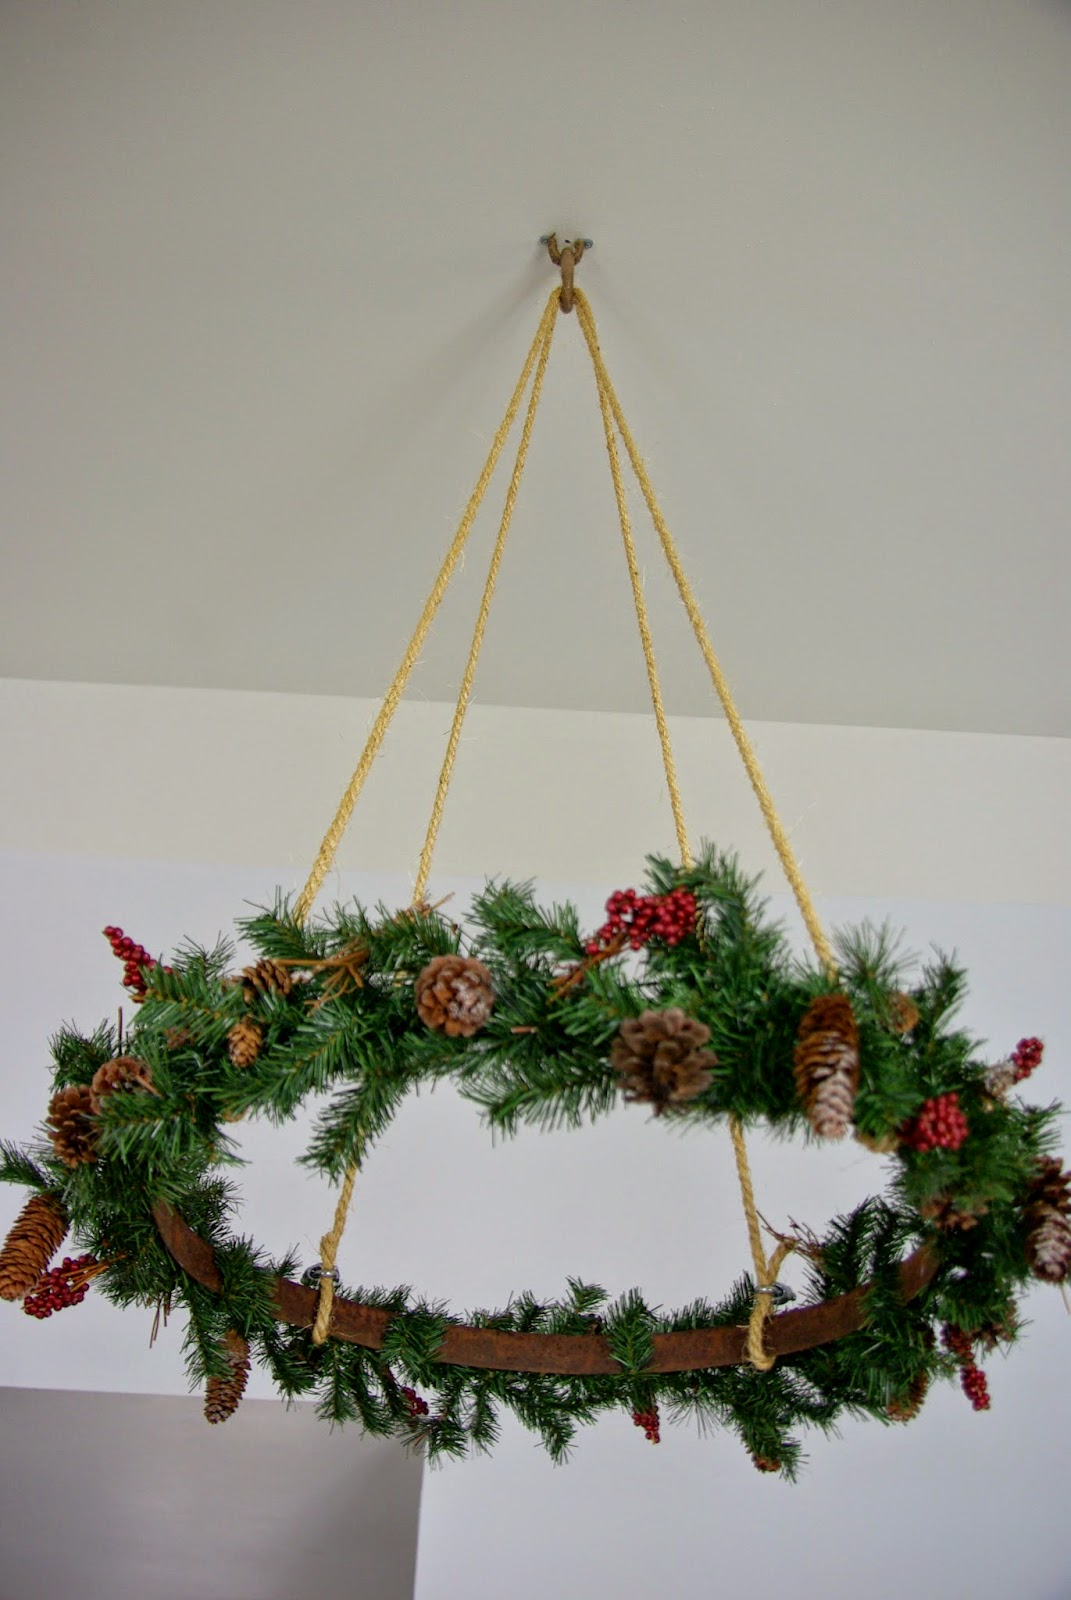 Ceiling Hanging Christmas Wreath Our House Now A Home